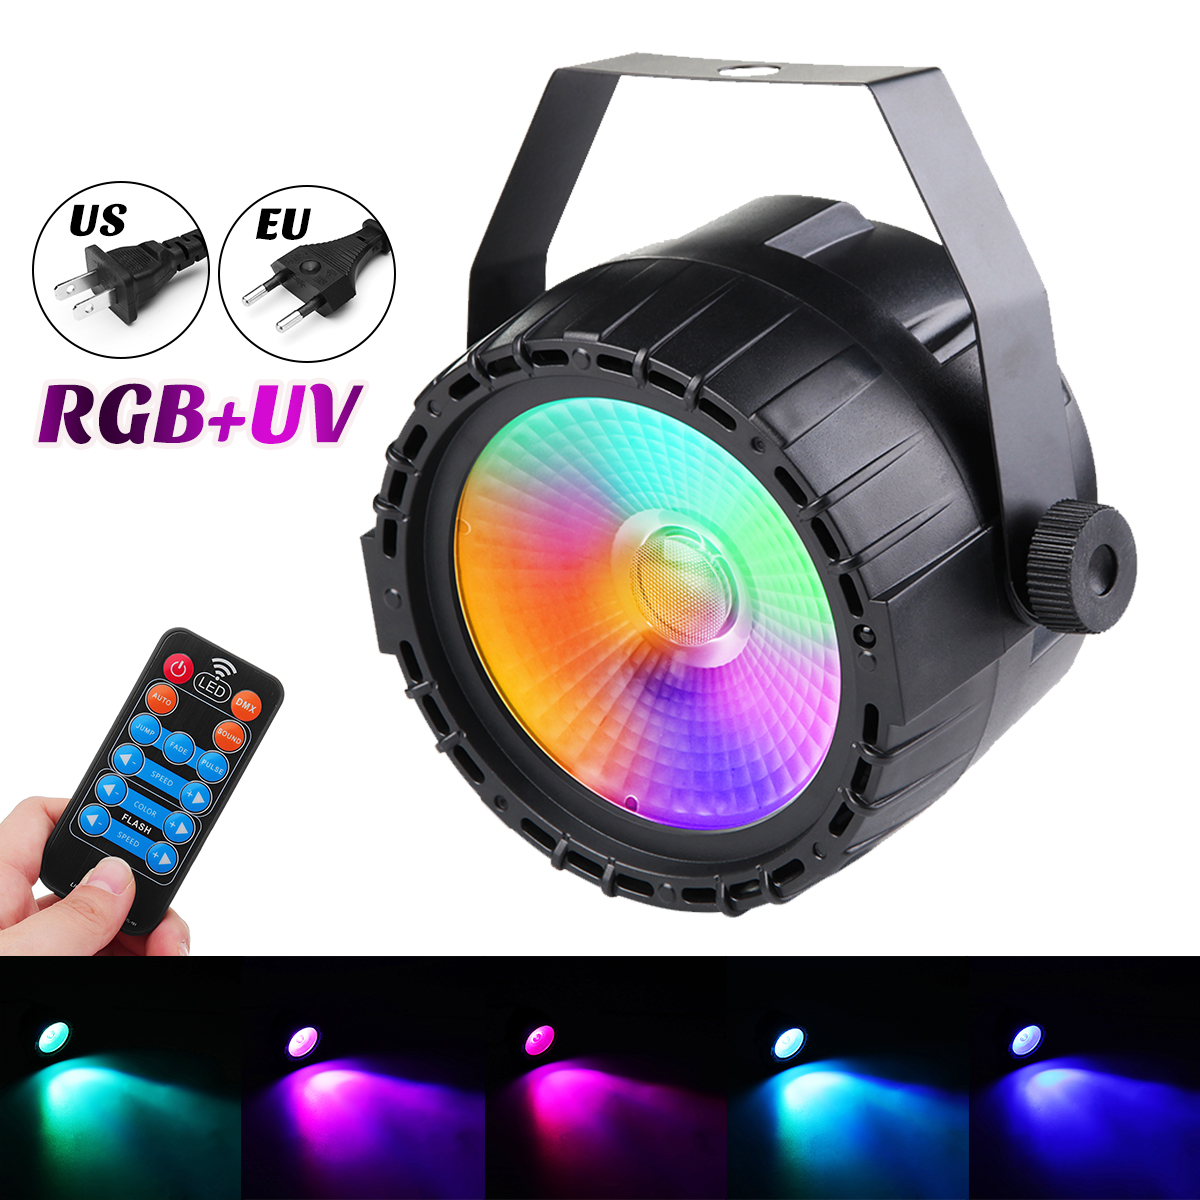 UV LED Bühne Licht mit Fernbedienung 30 watt COB LED Wall Washer Effekt DMX 512 Multi-modus Control Für DJ Bar Party 90-240 v US/Eu Stecker